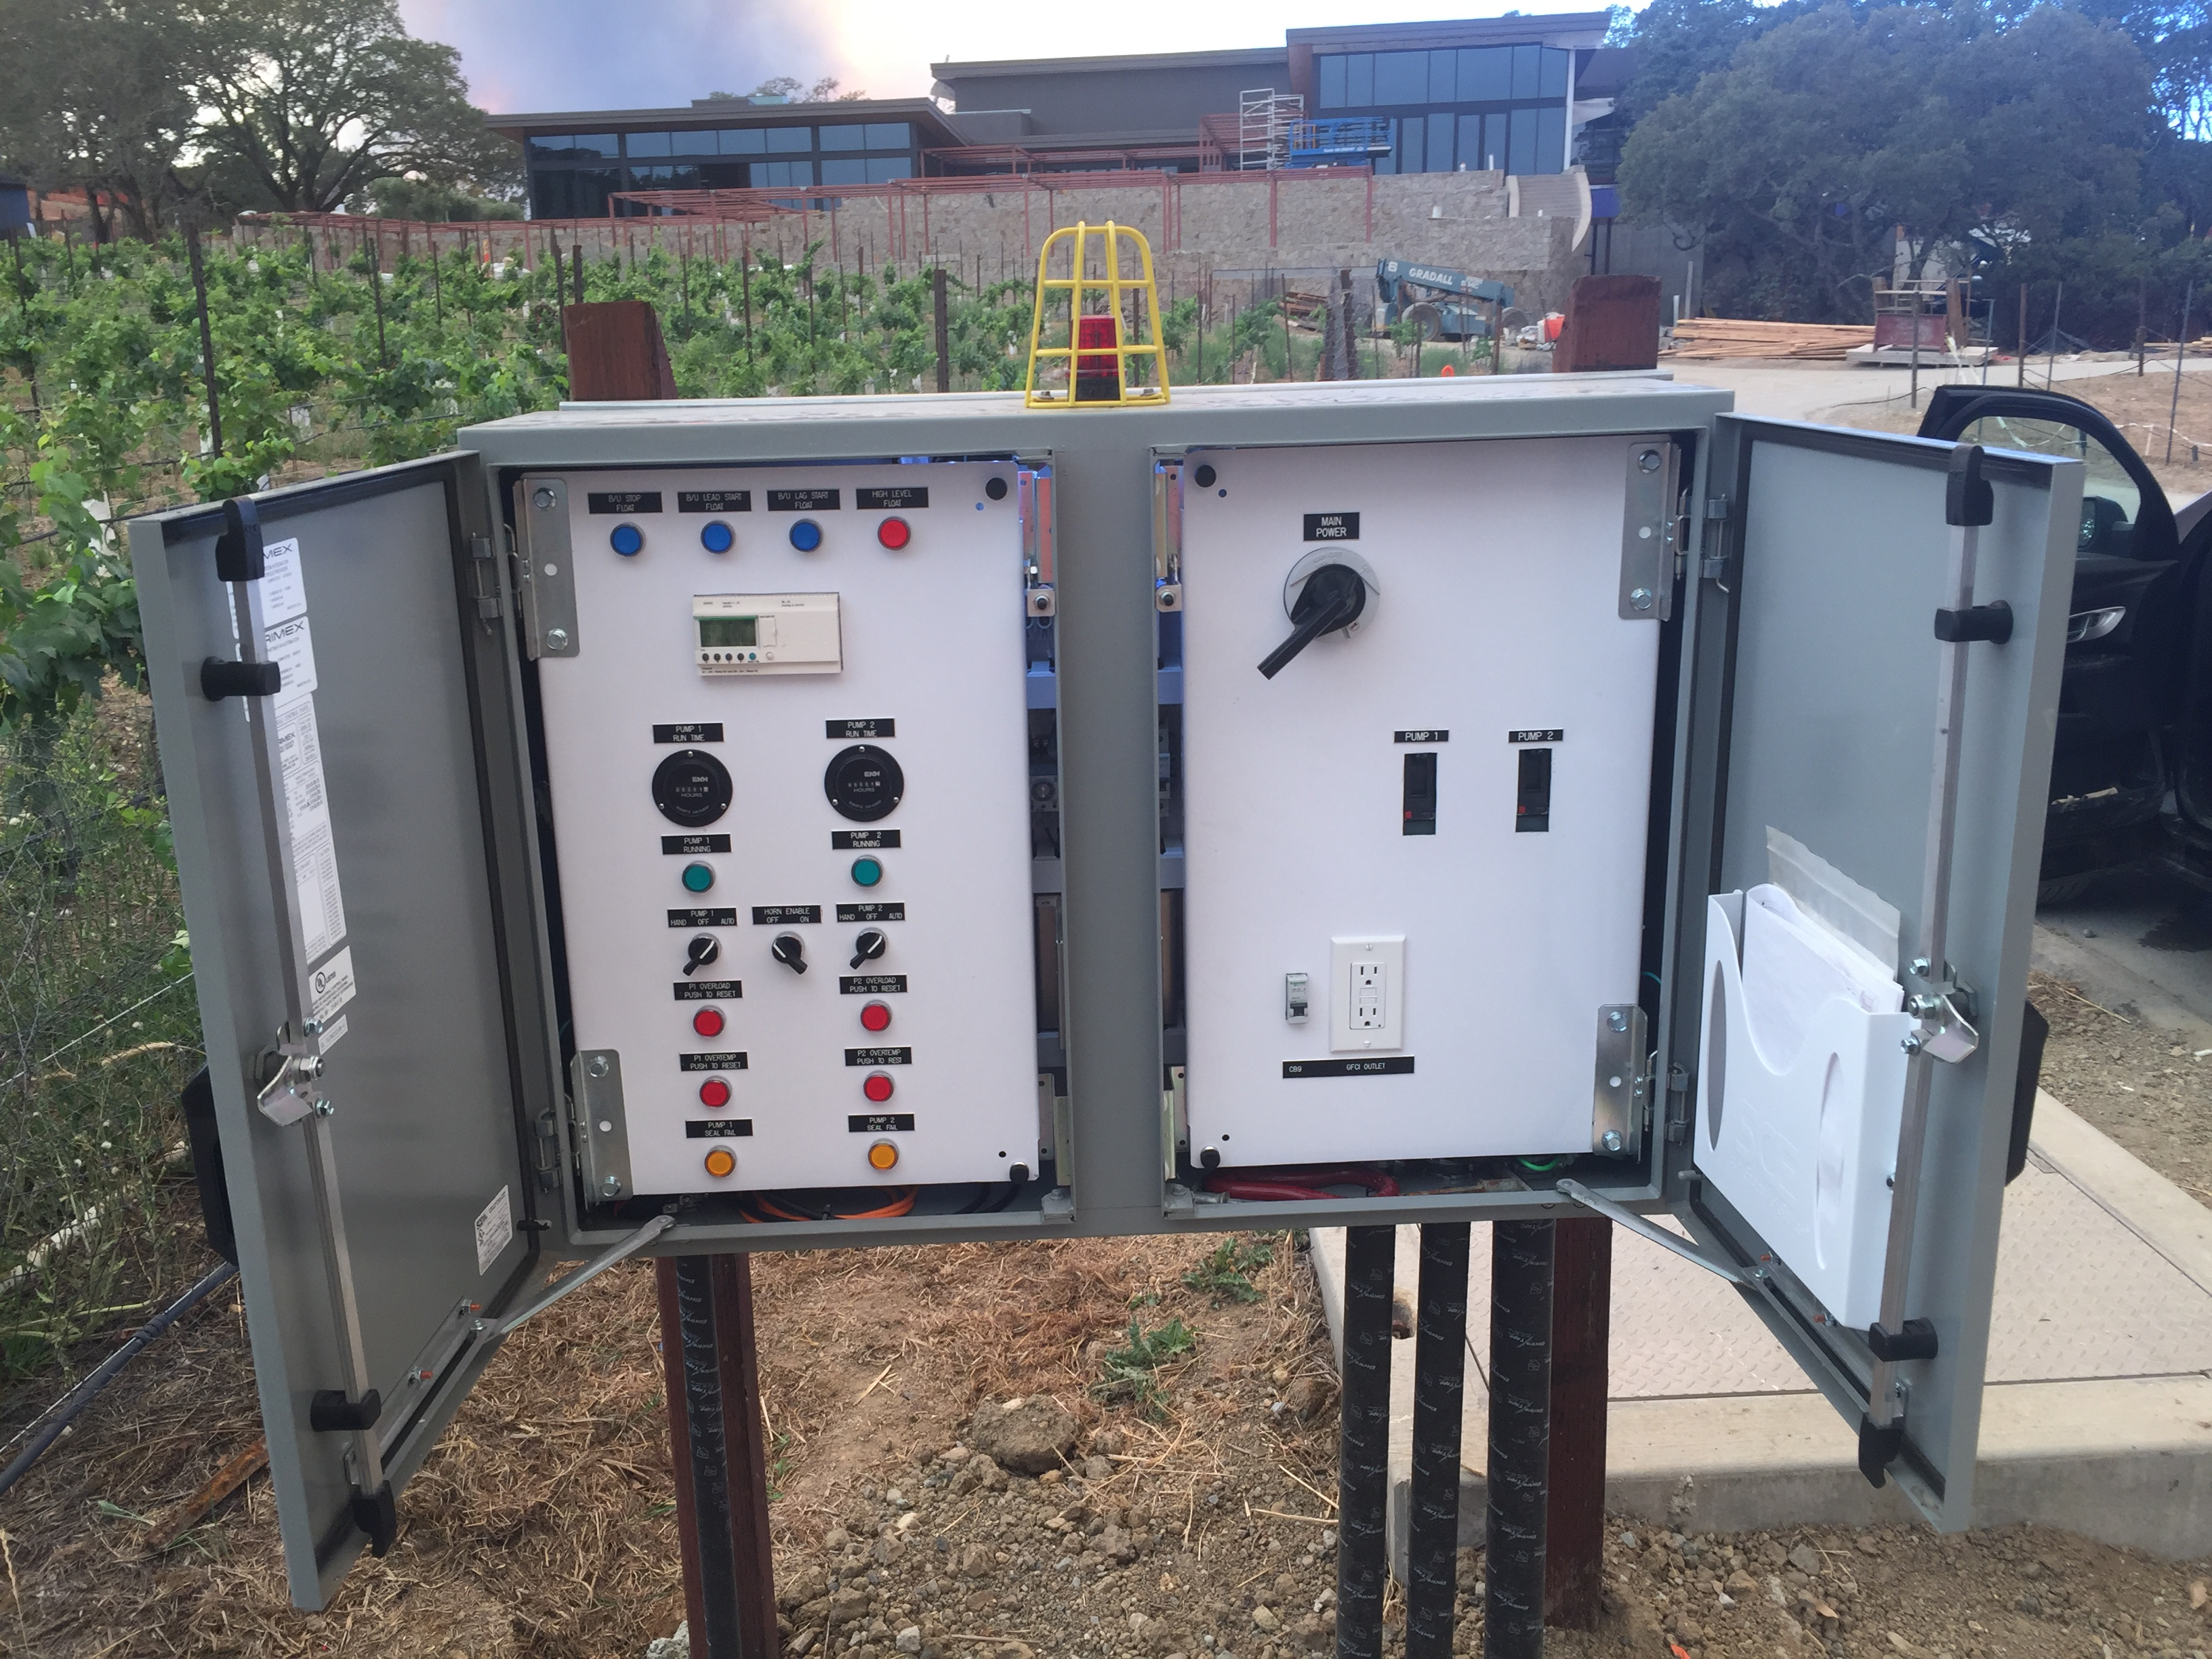 Double Control Panel for Pump Station